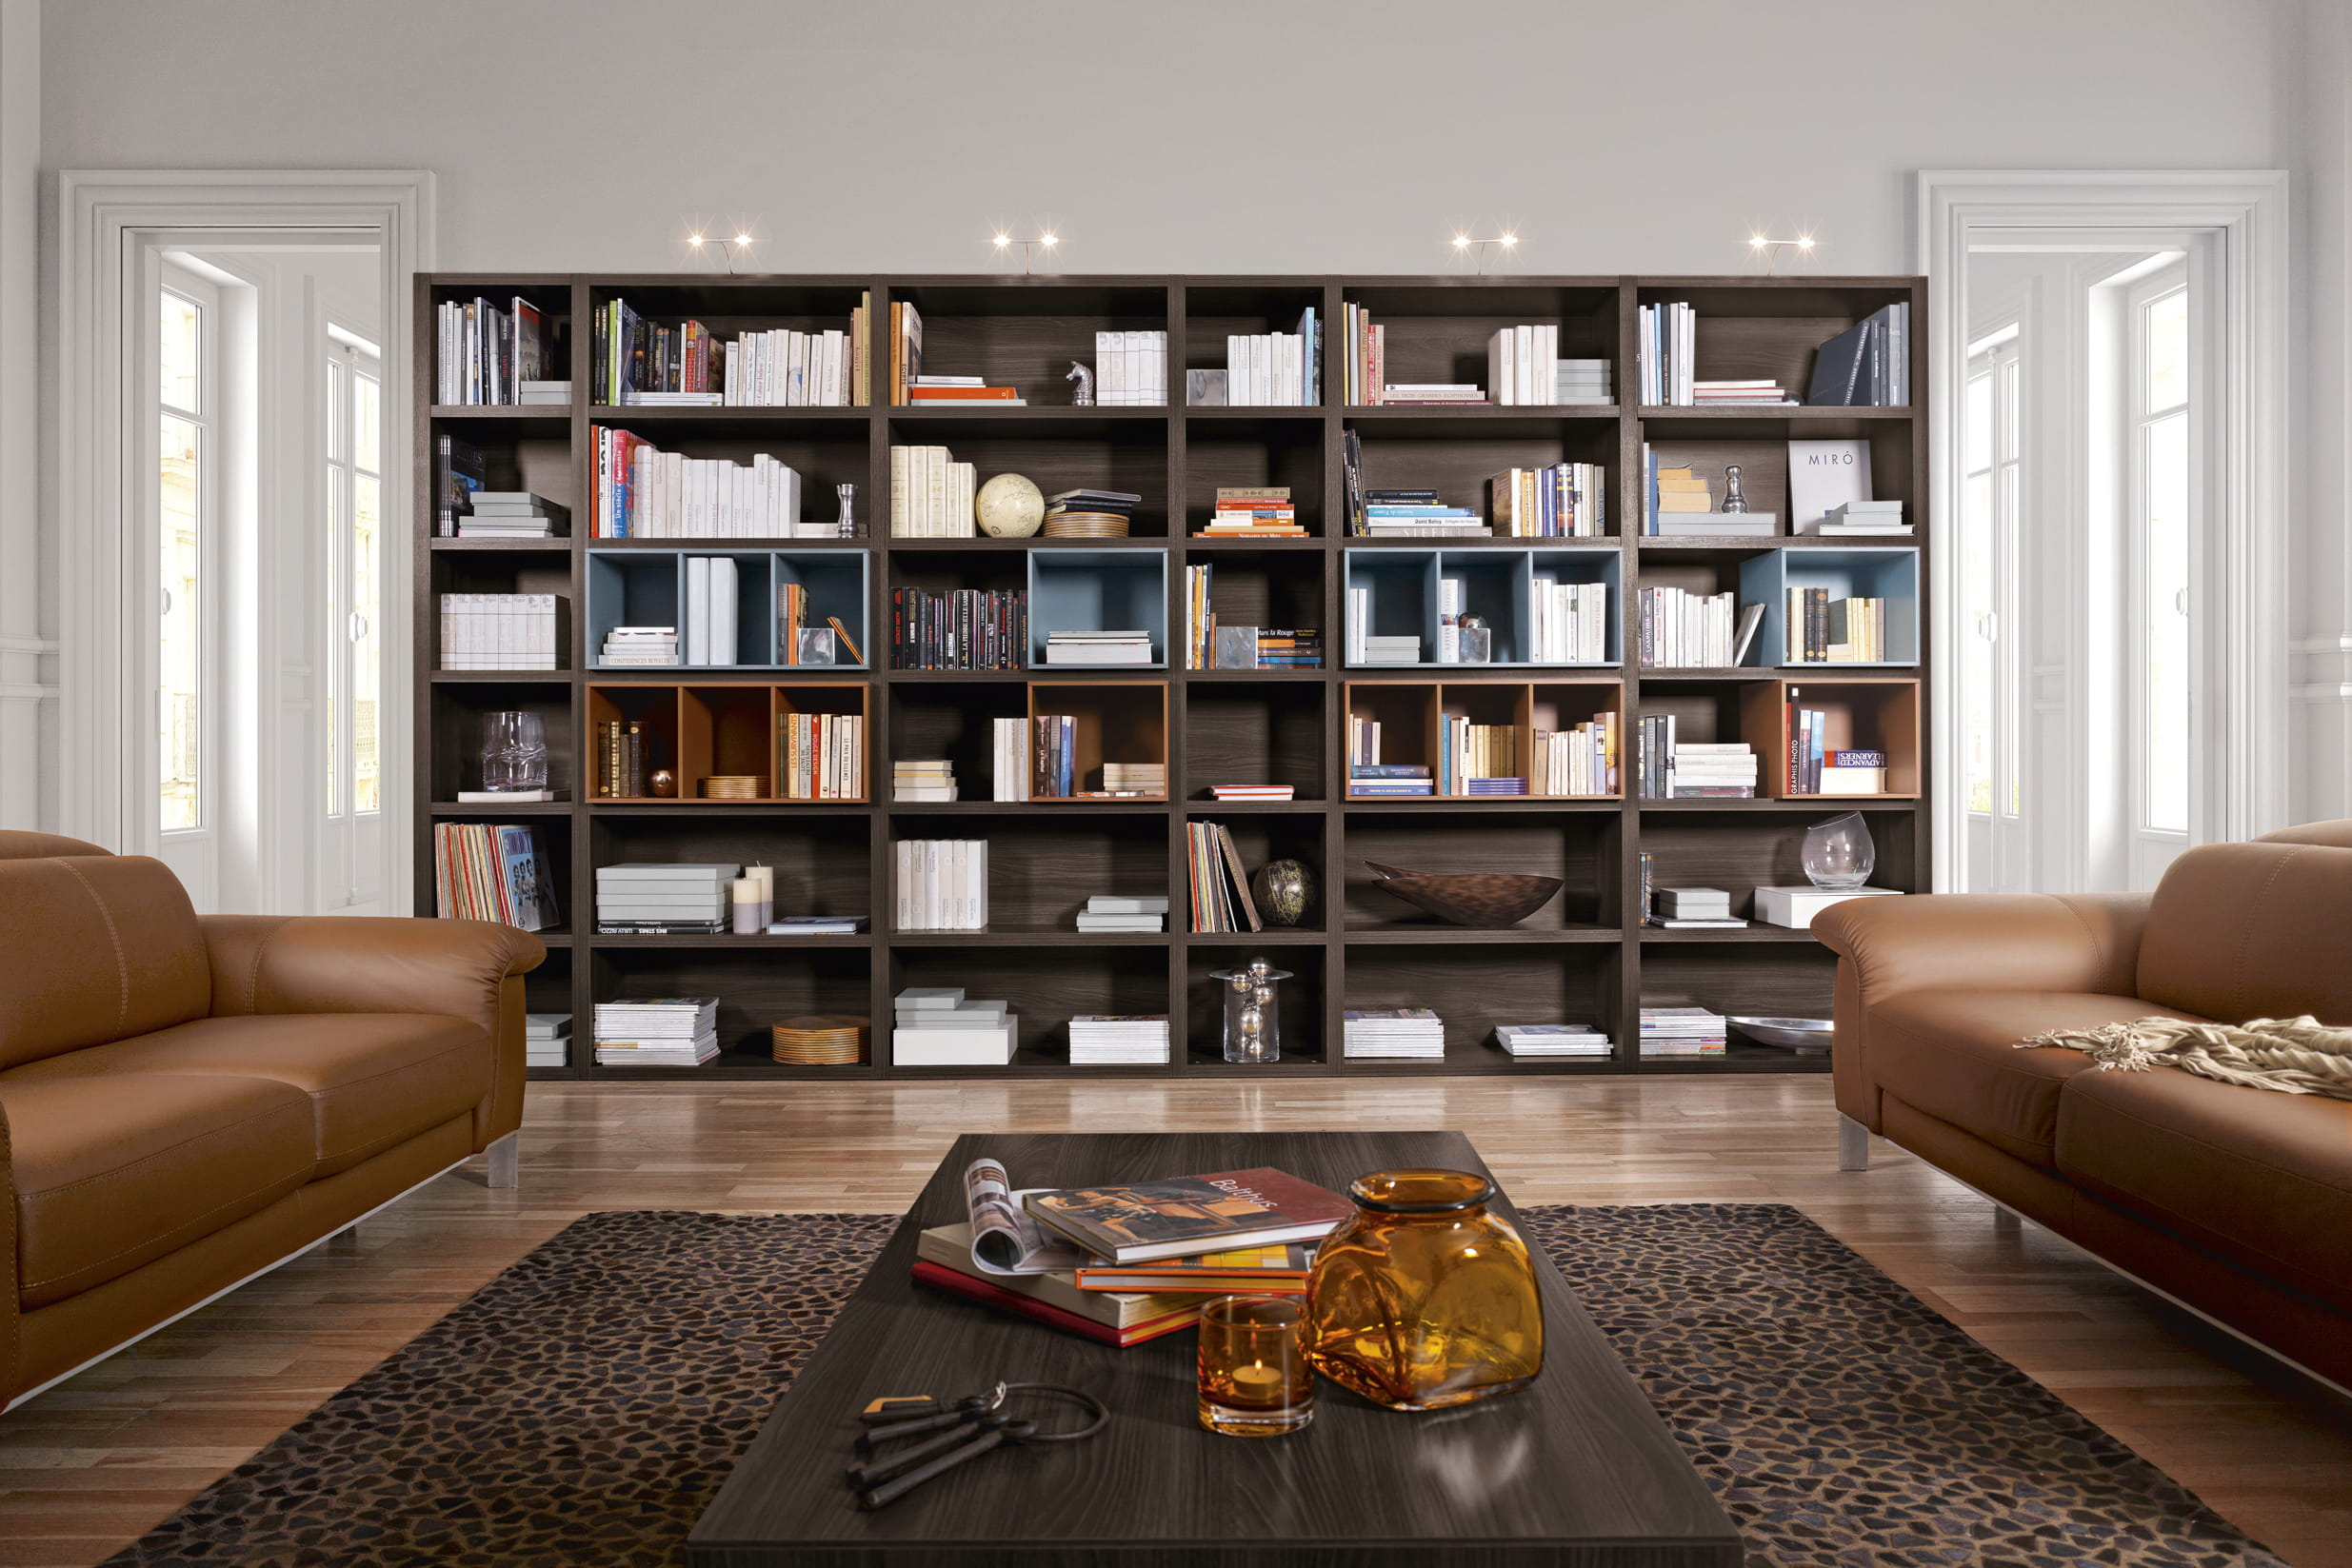 biblioth que en noyer fum gautier. Black Bedroom Furniture Sets. Home Design Ideas